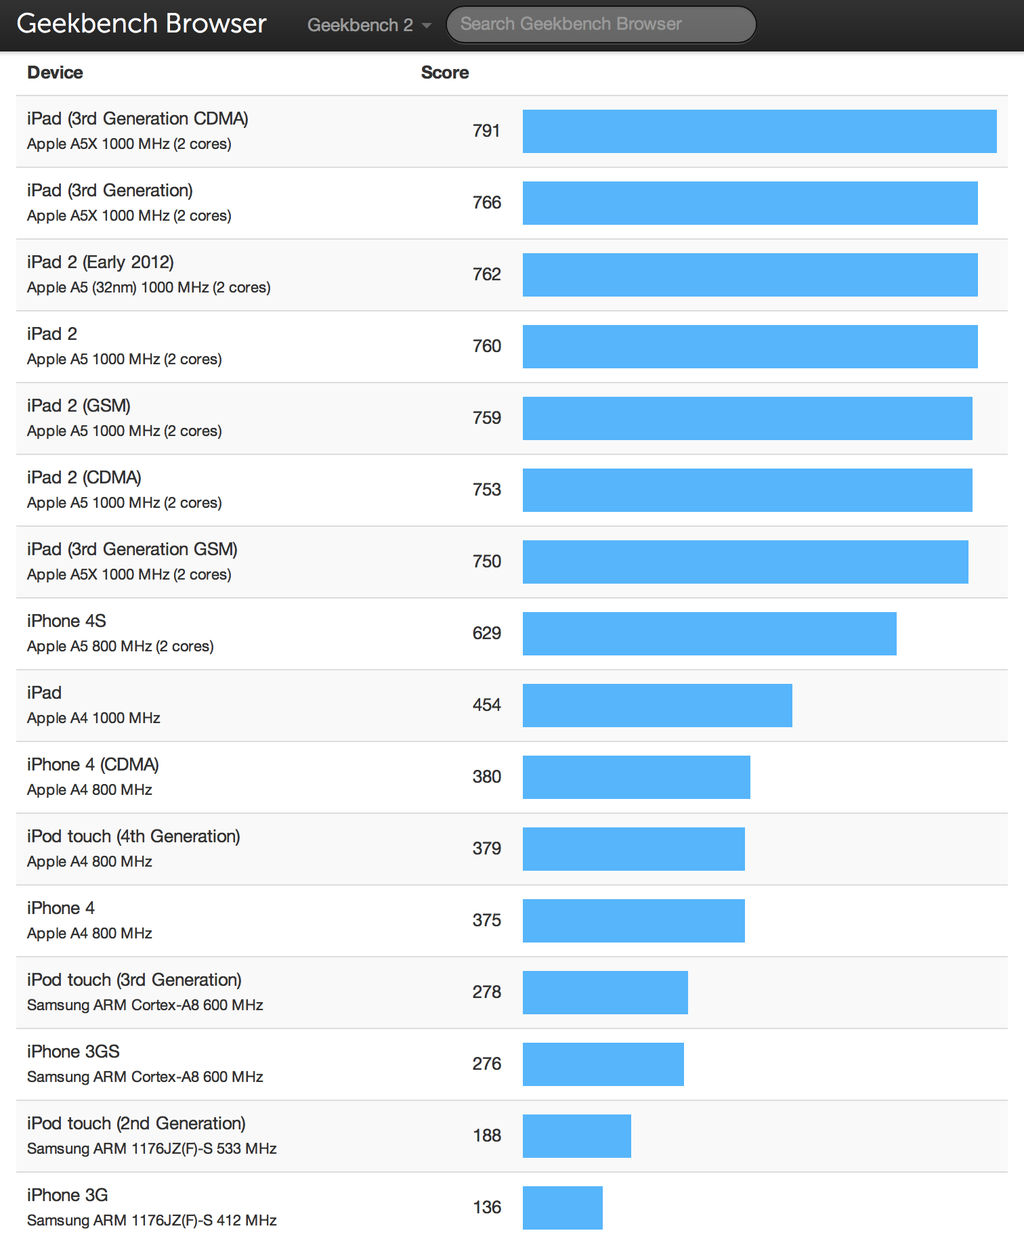 iPhone, iPad, and iPod Benchmarks - Geekbench Browser